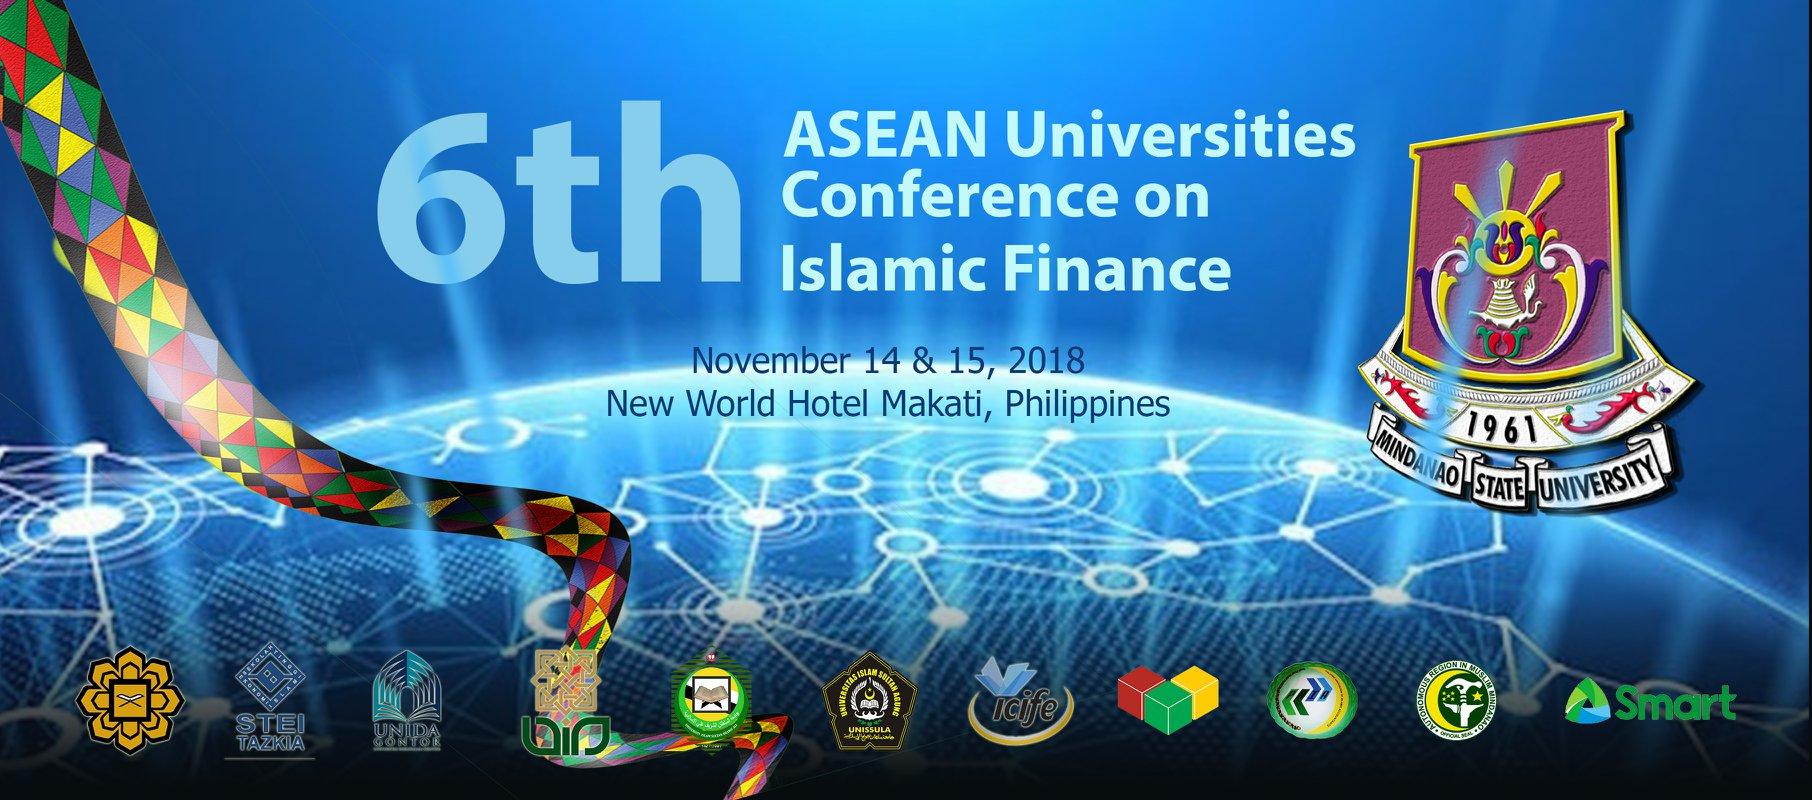 ASEAN educators, experts to discuss blockchain tech for Sukuk financing